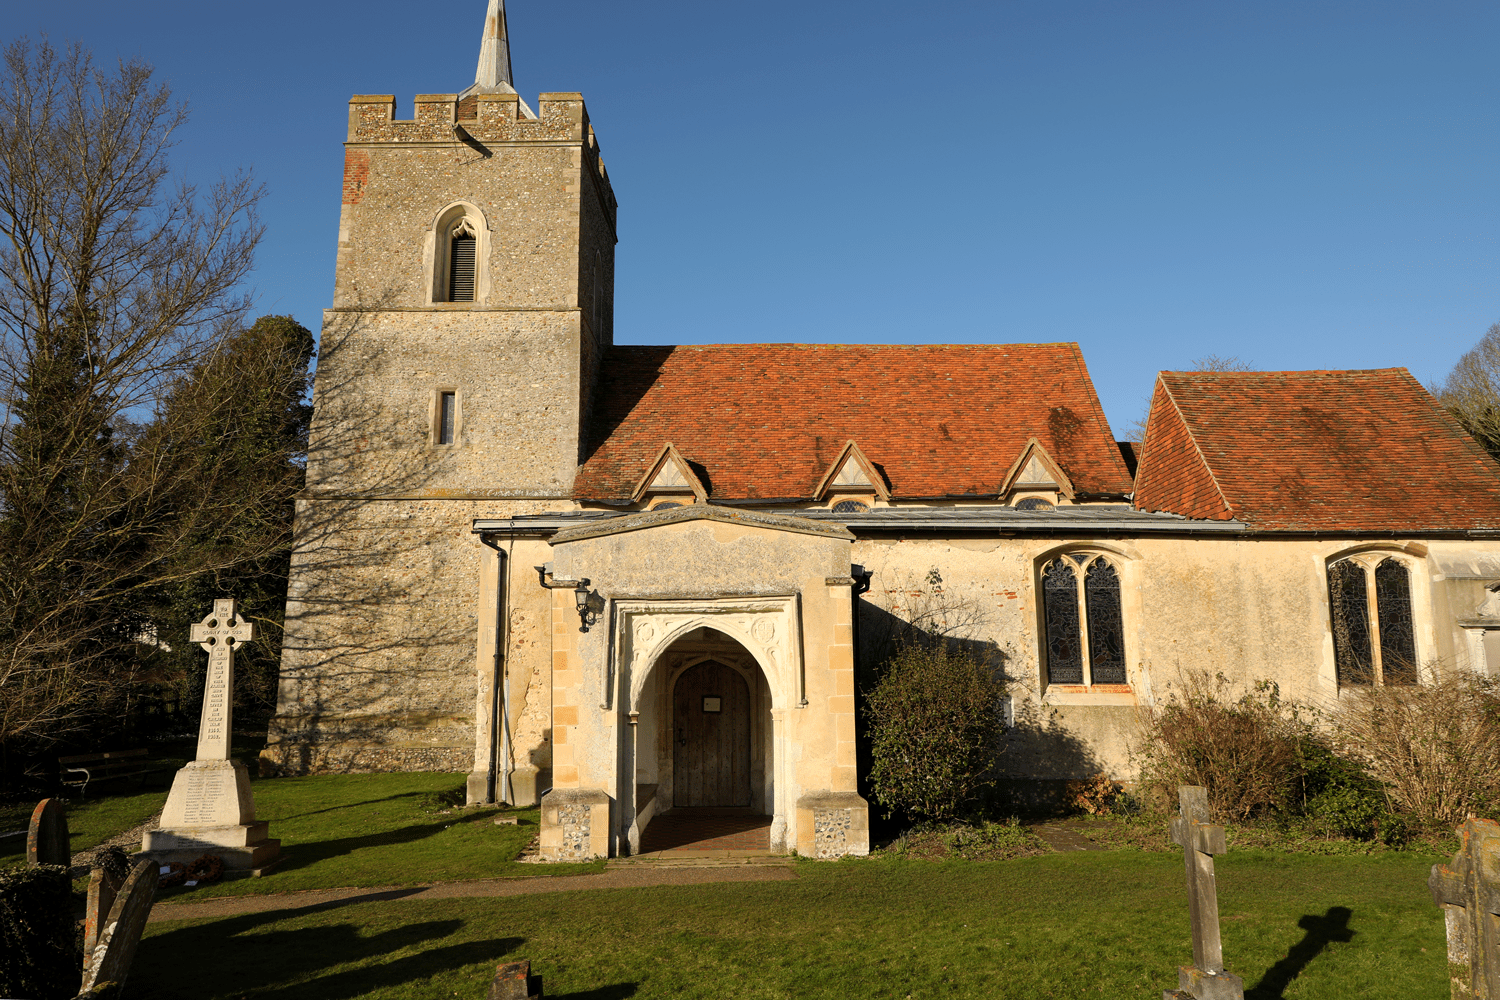 A picture of the front entrance of St. Mary's Church, Aspenden.